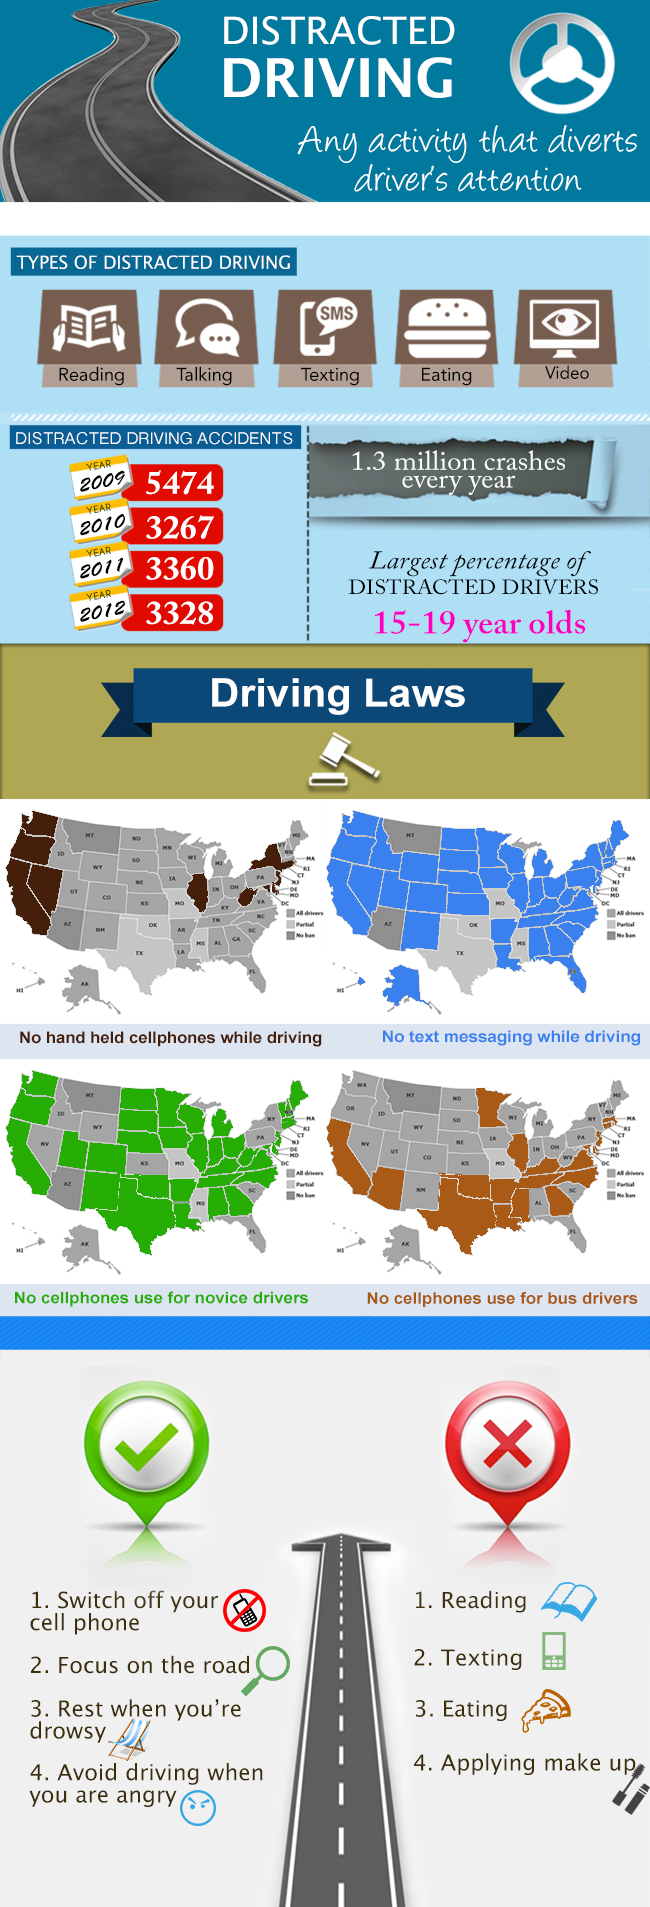 Dummies' guide to distracted driving laws